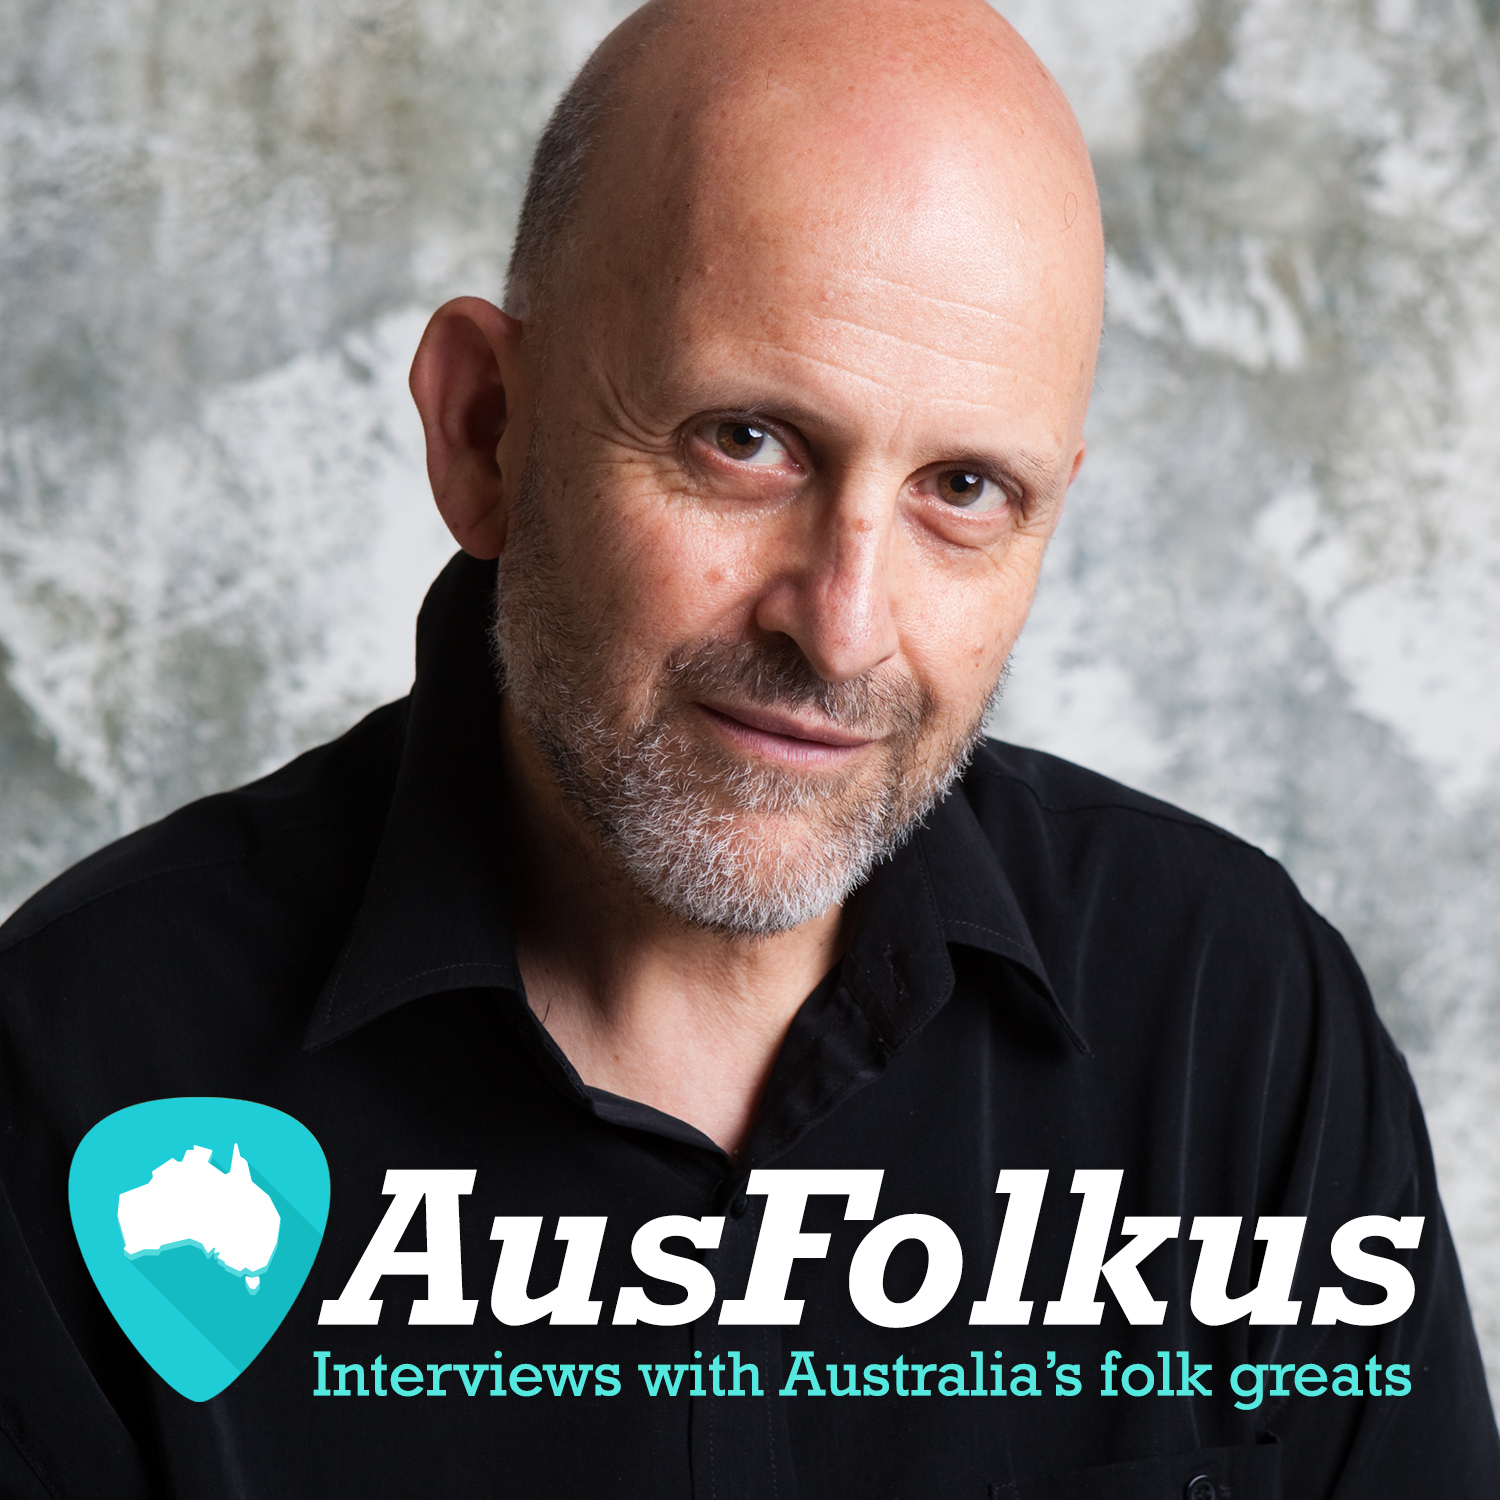 AusFolkus podcast cover - Andy Busuttil and title